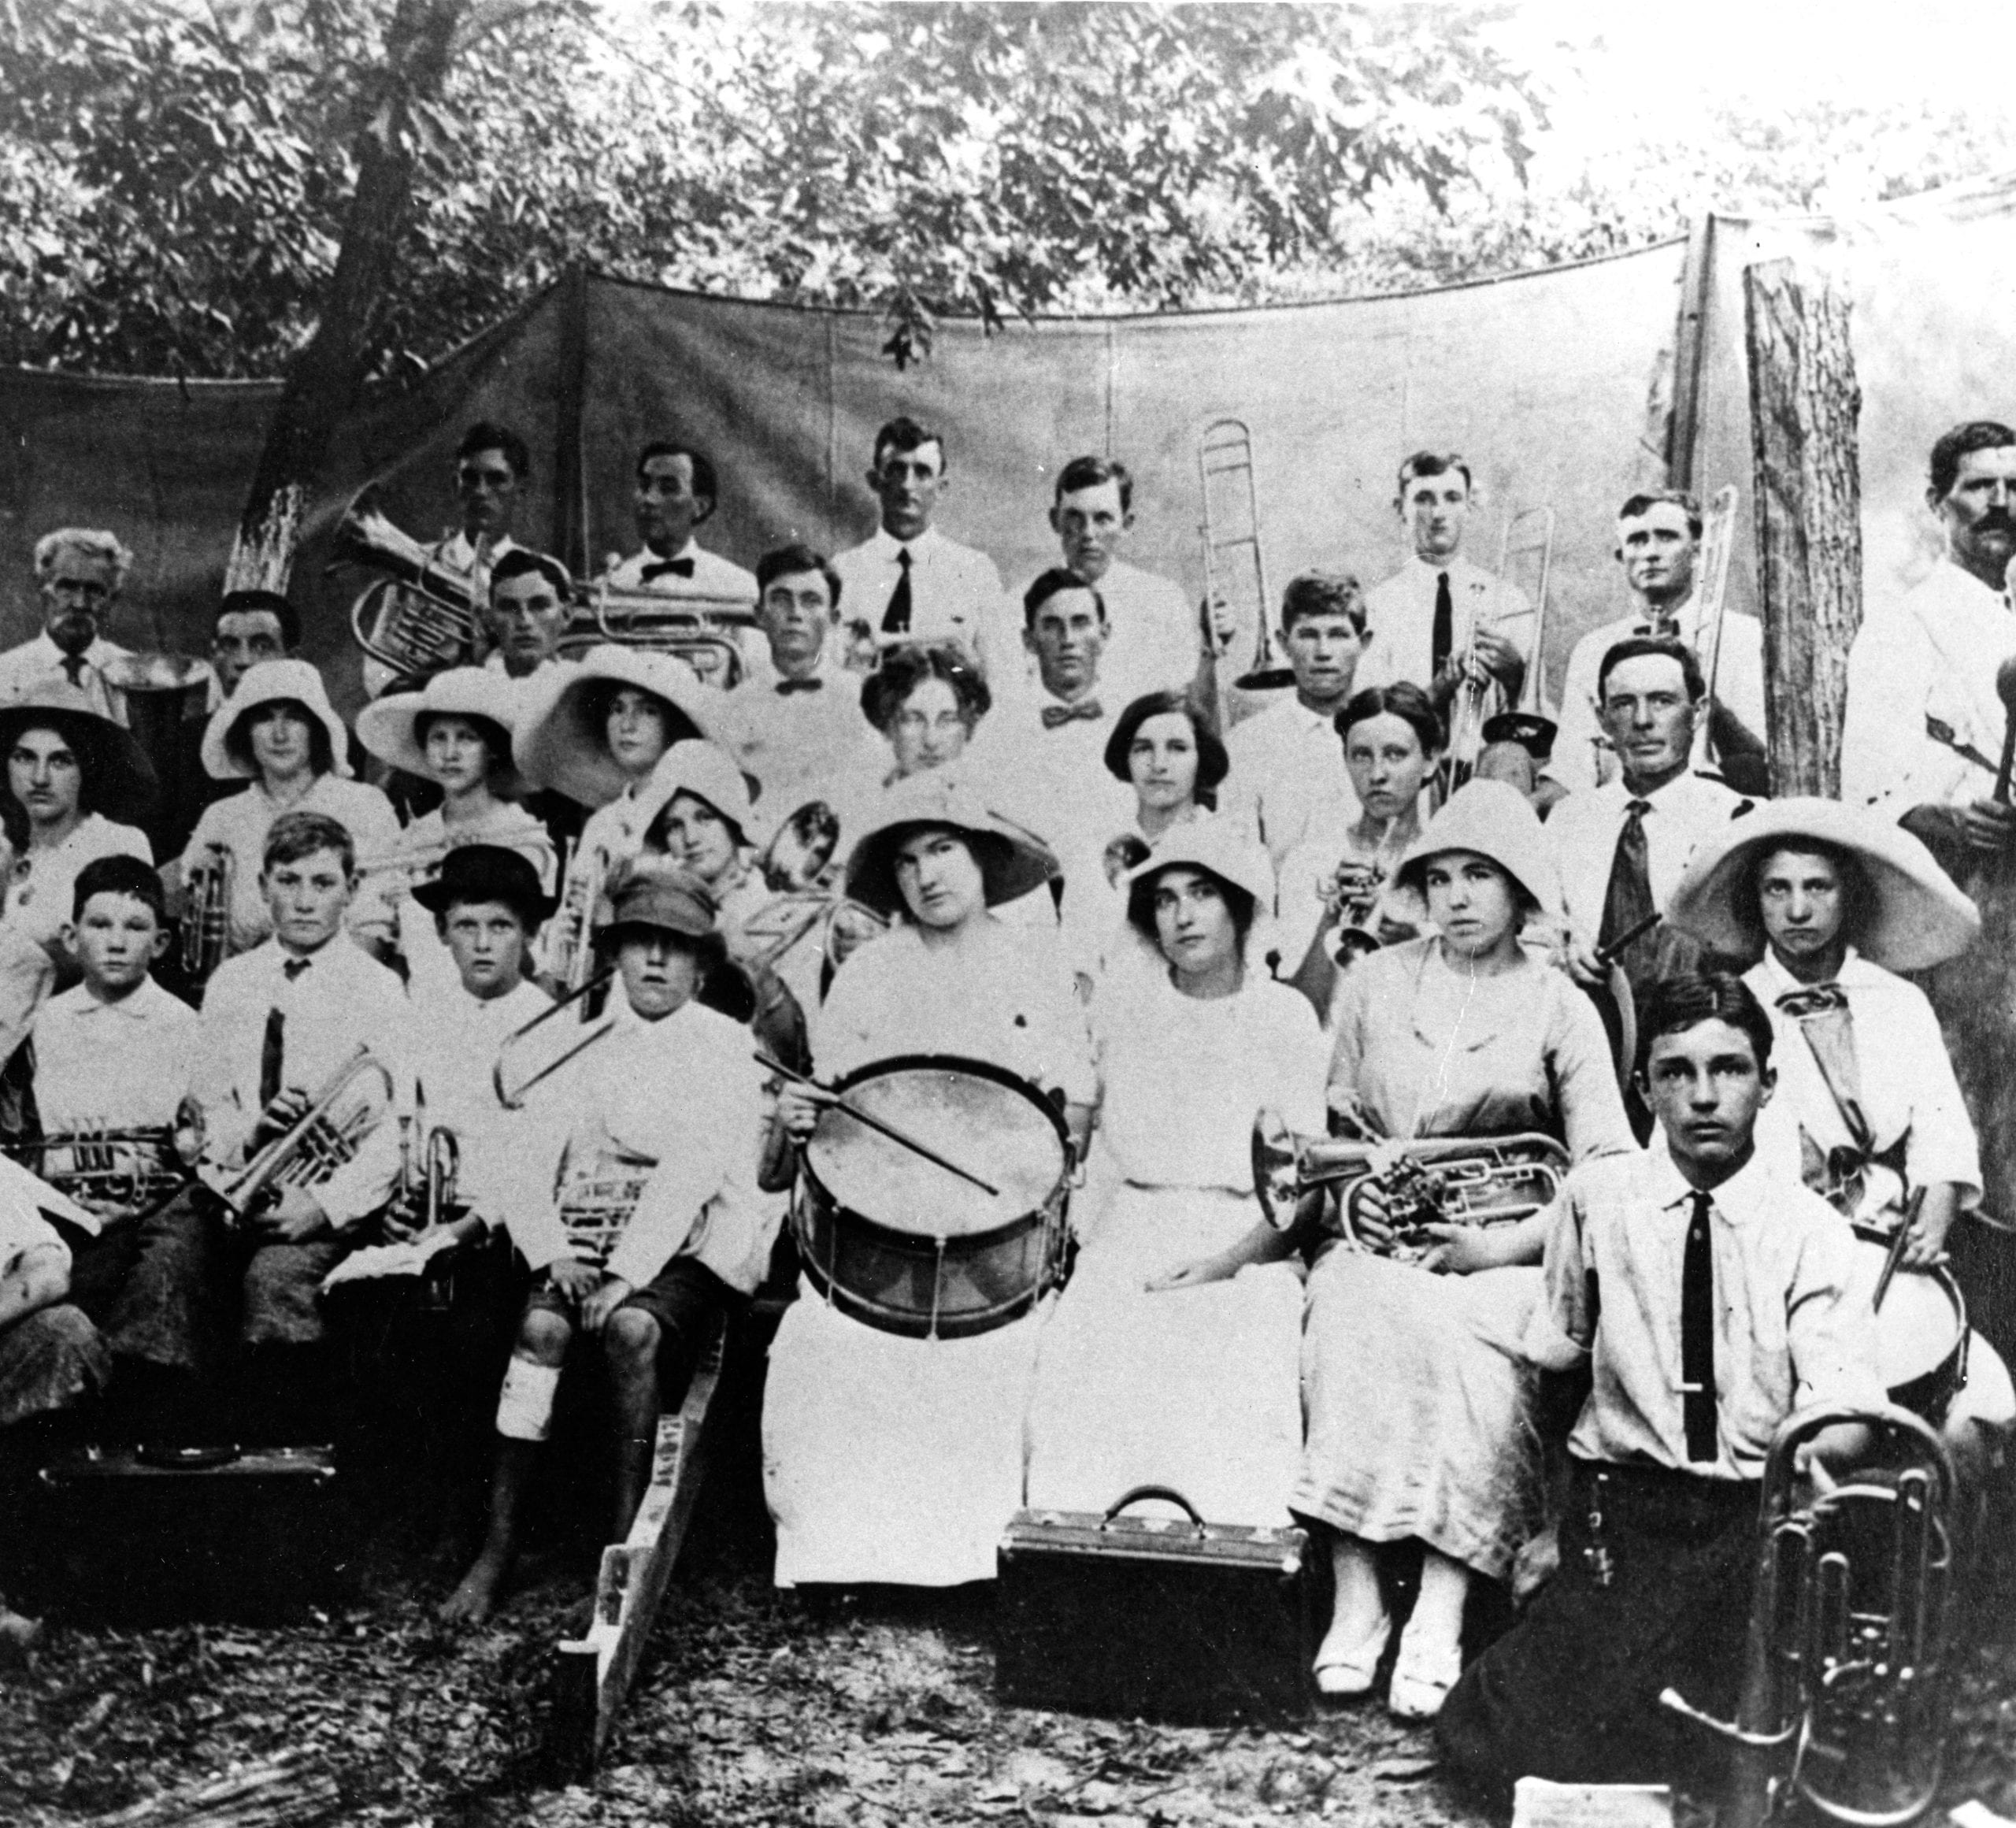 1920's – Jacksonport Town Band